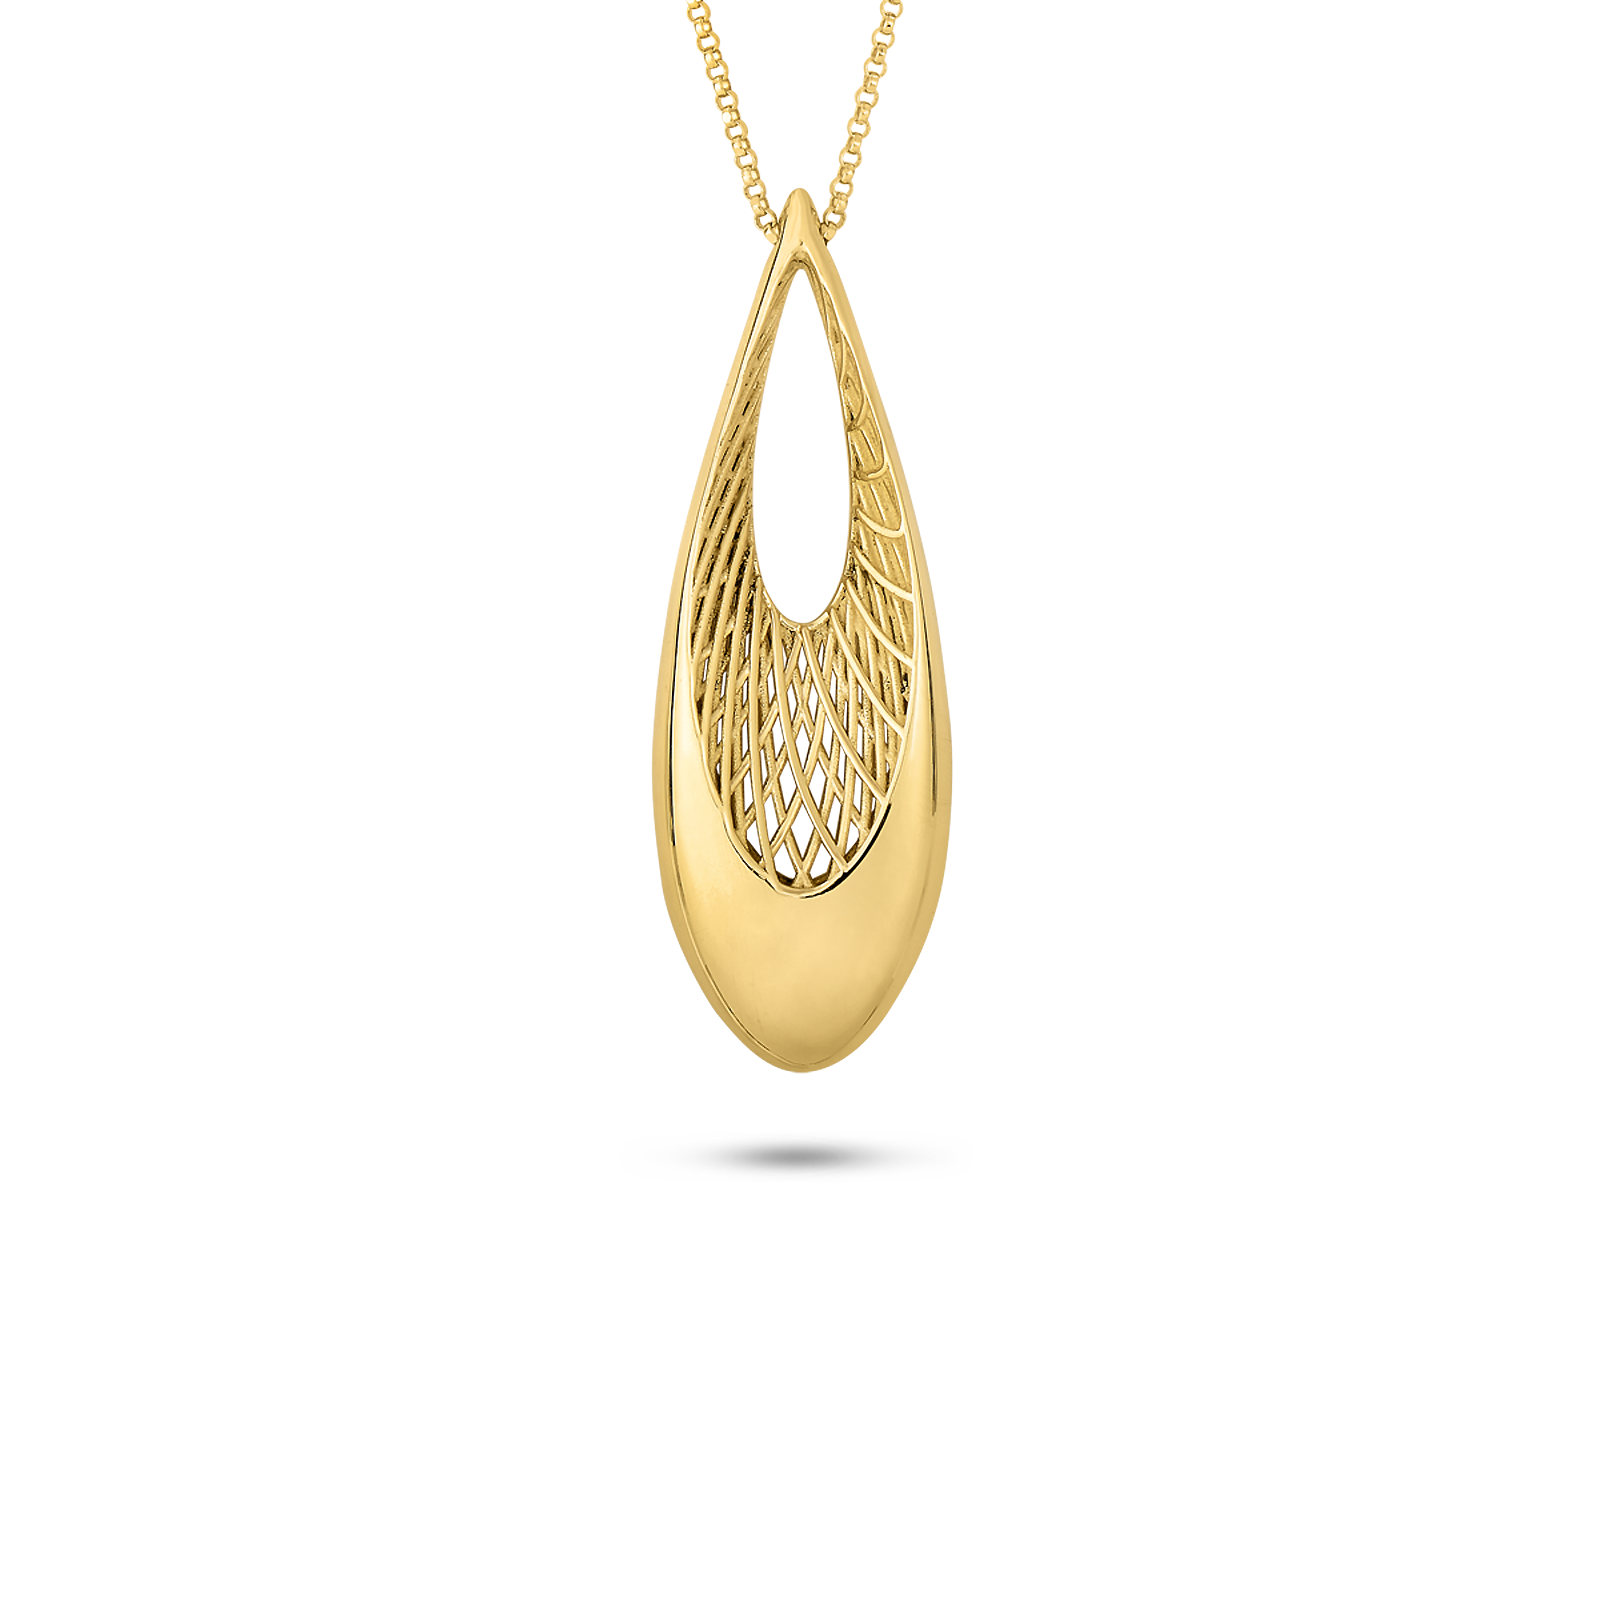 in pin primavera italian coin carefully has dipped earrings his gold collection roberto placed k